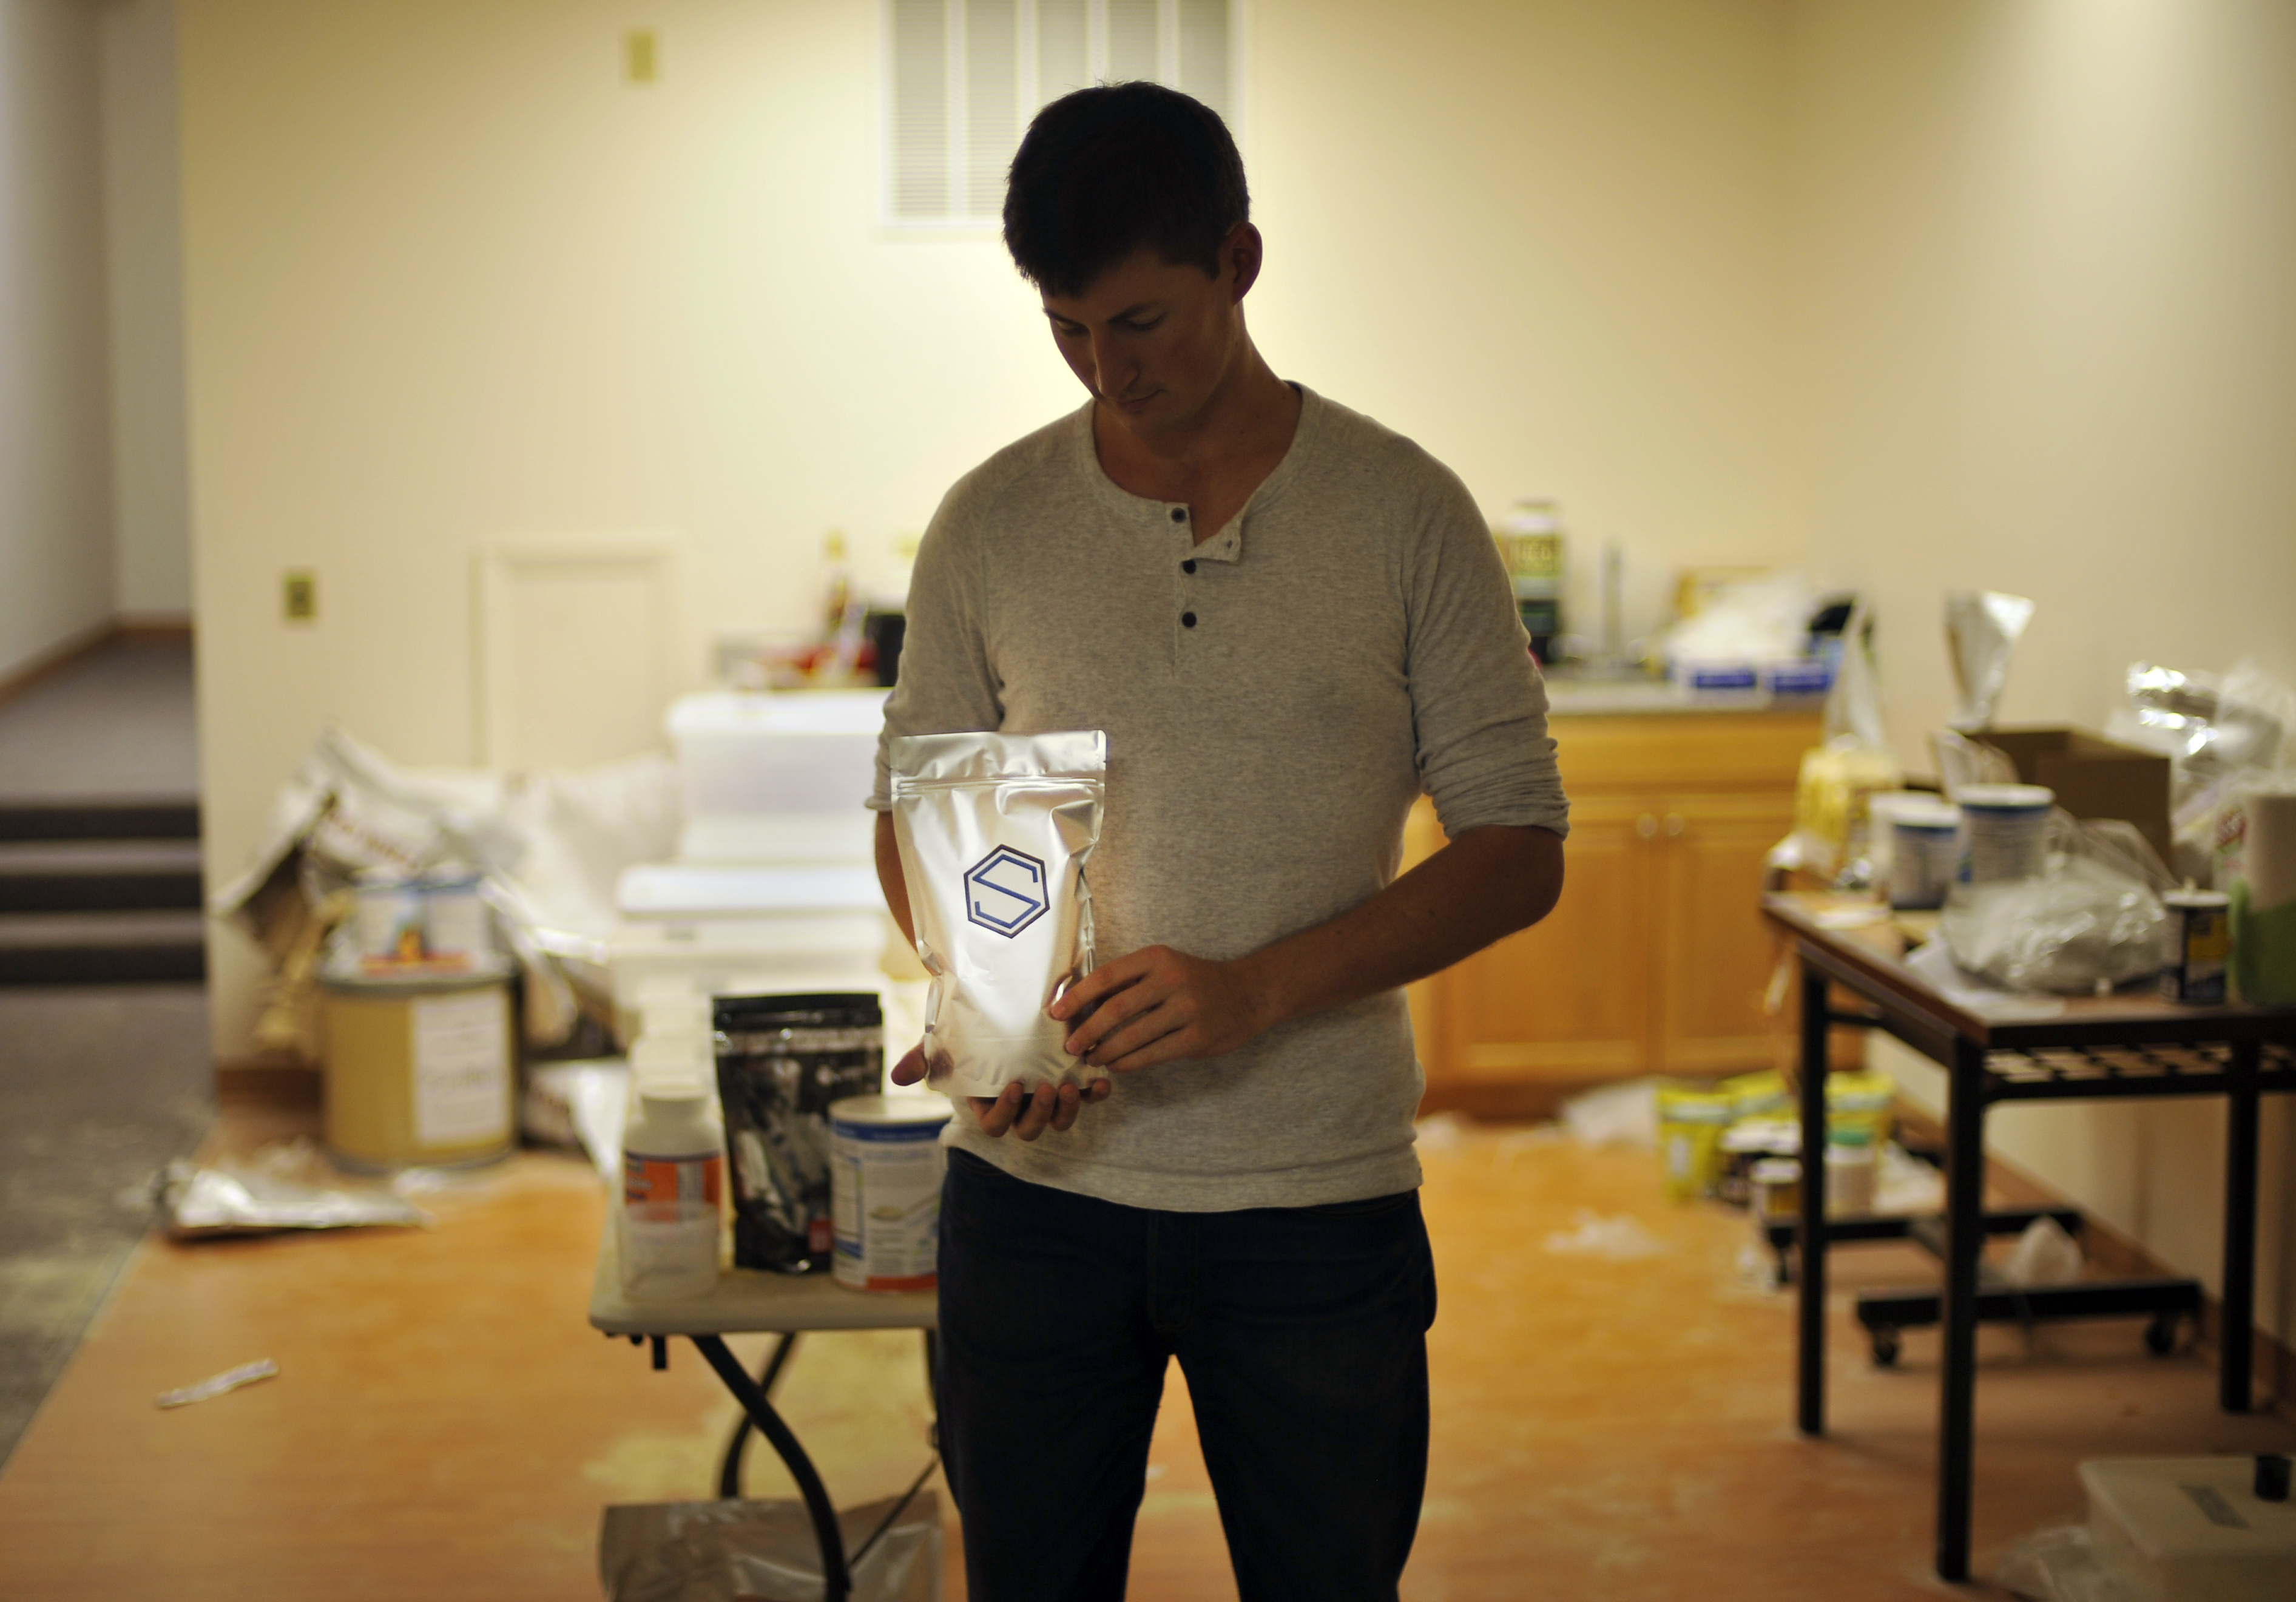 soylent keeps making people sick mit technology review